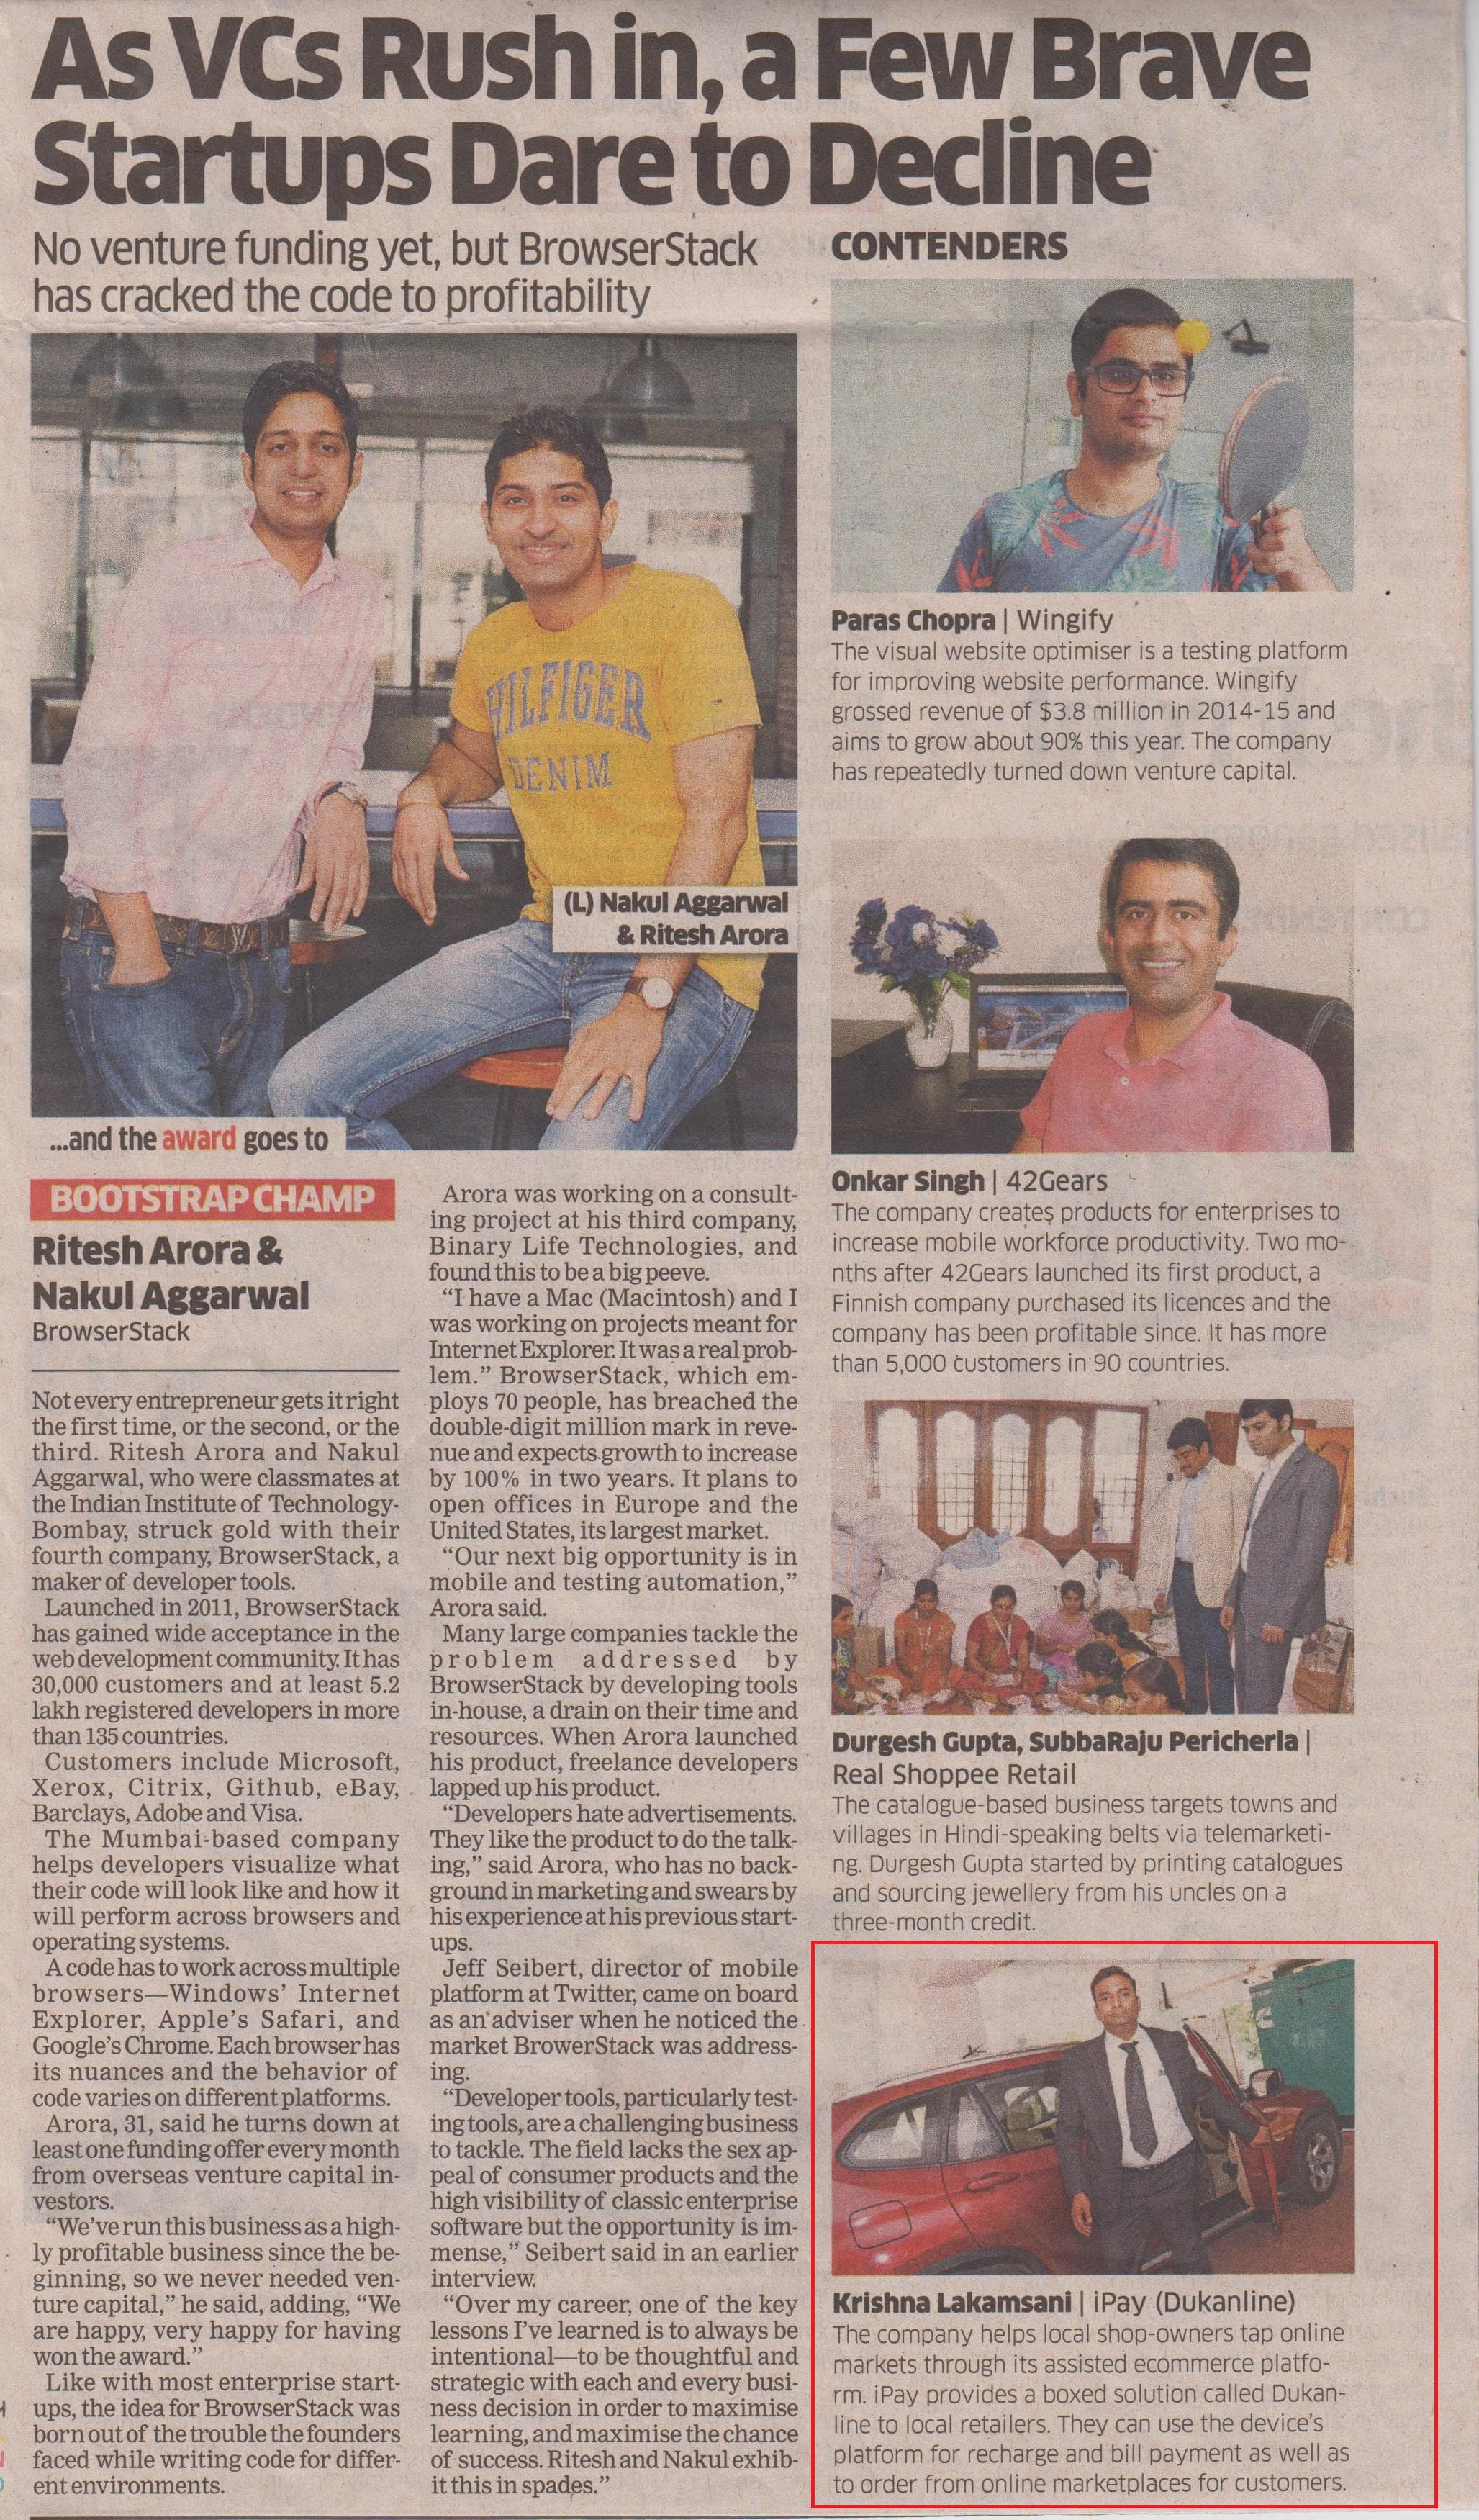 Coverage of IPay in The Economic Times (ET Startup Awards